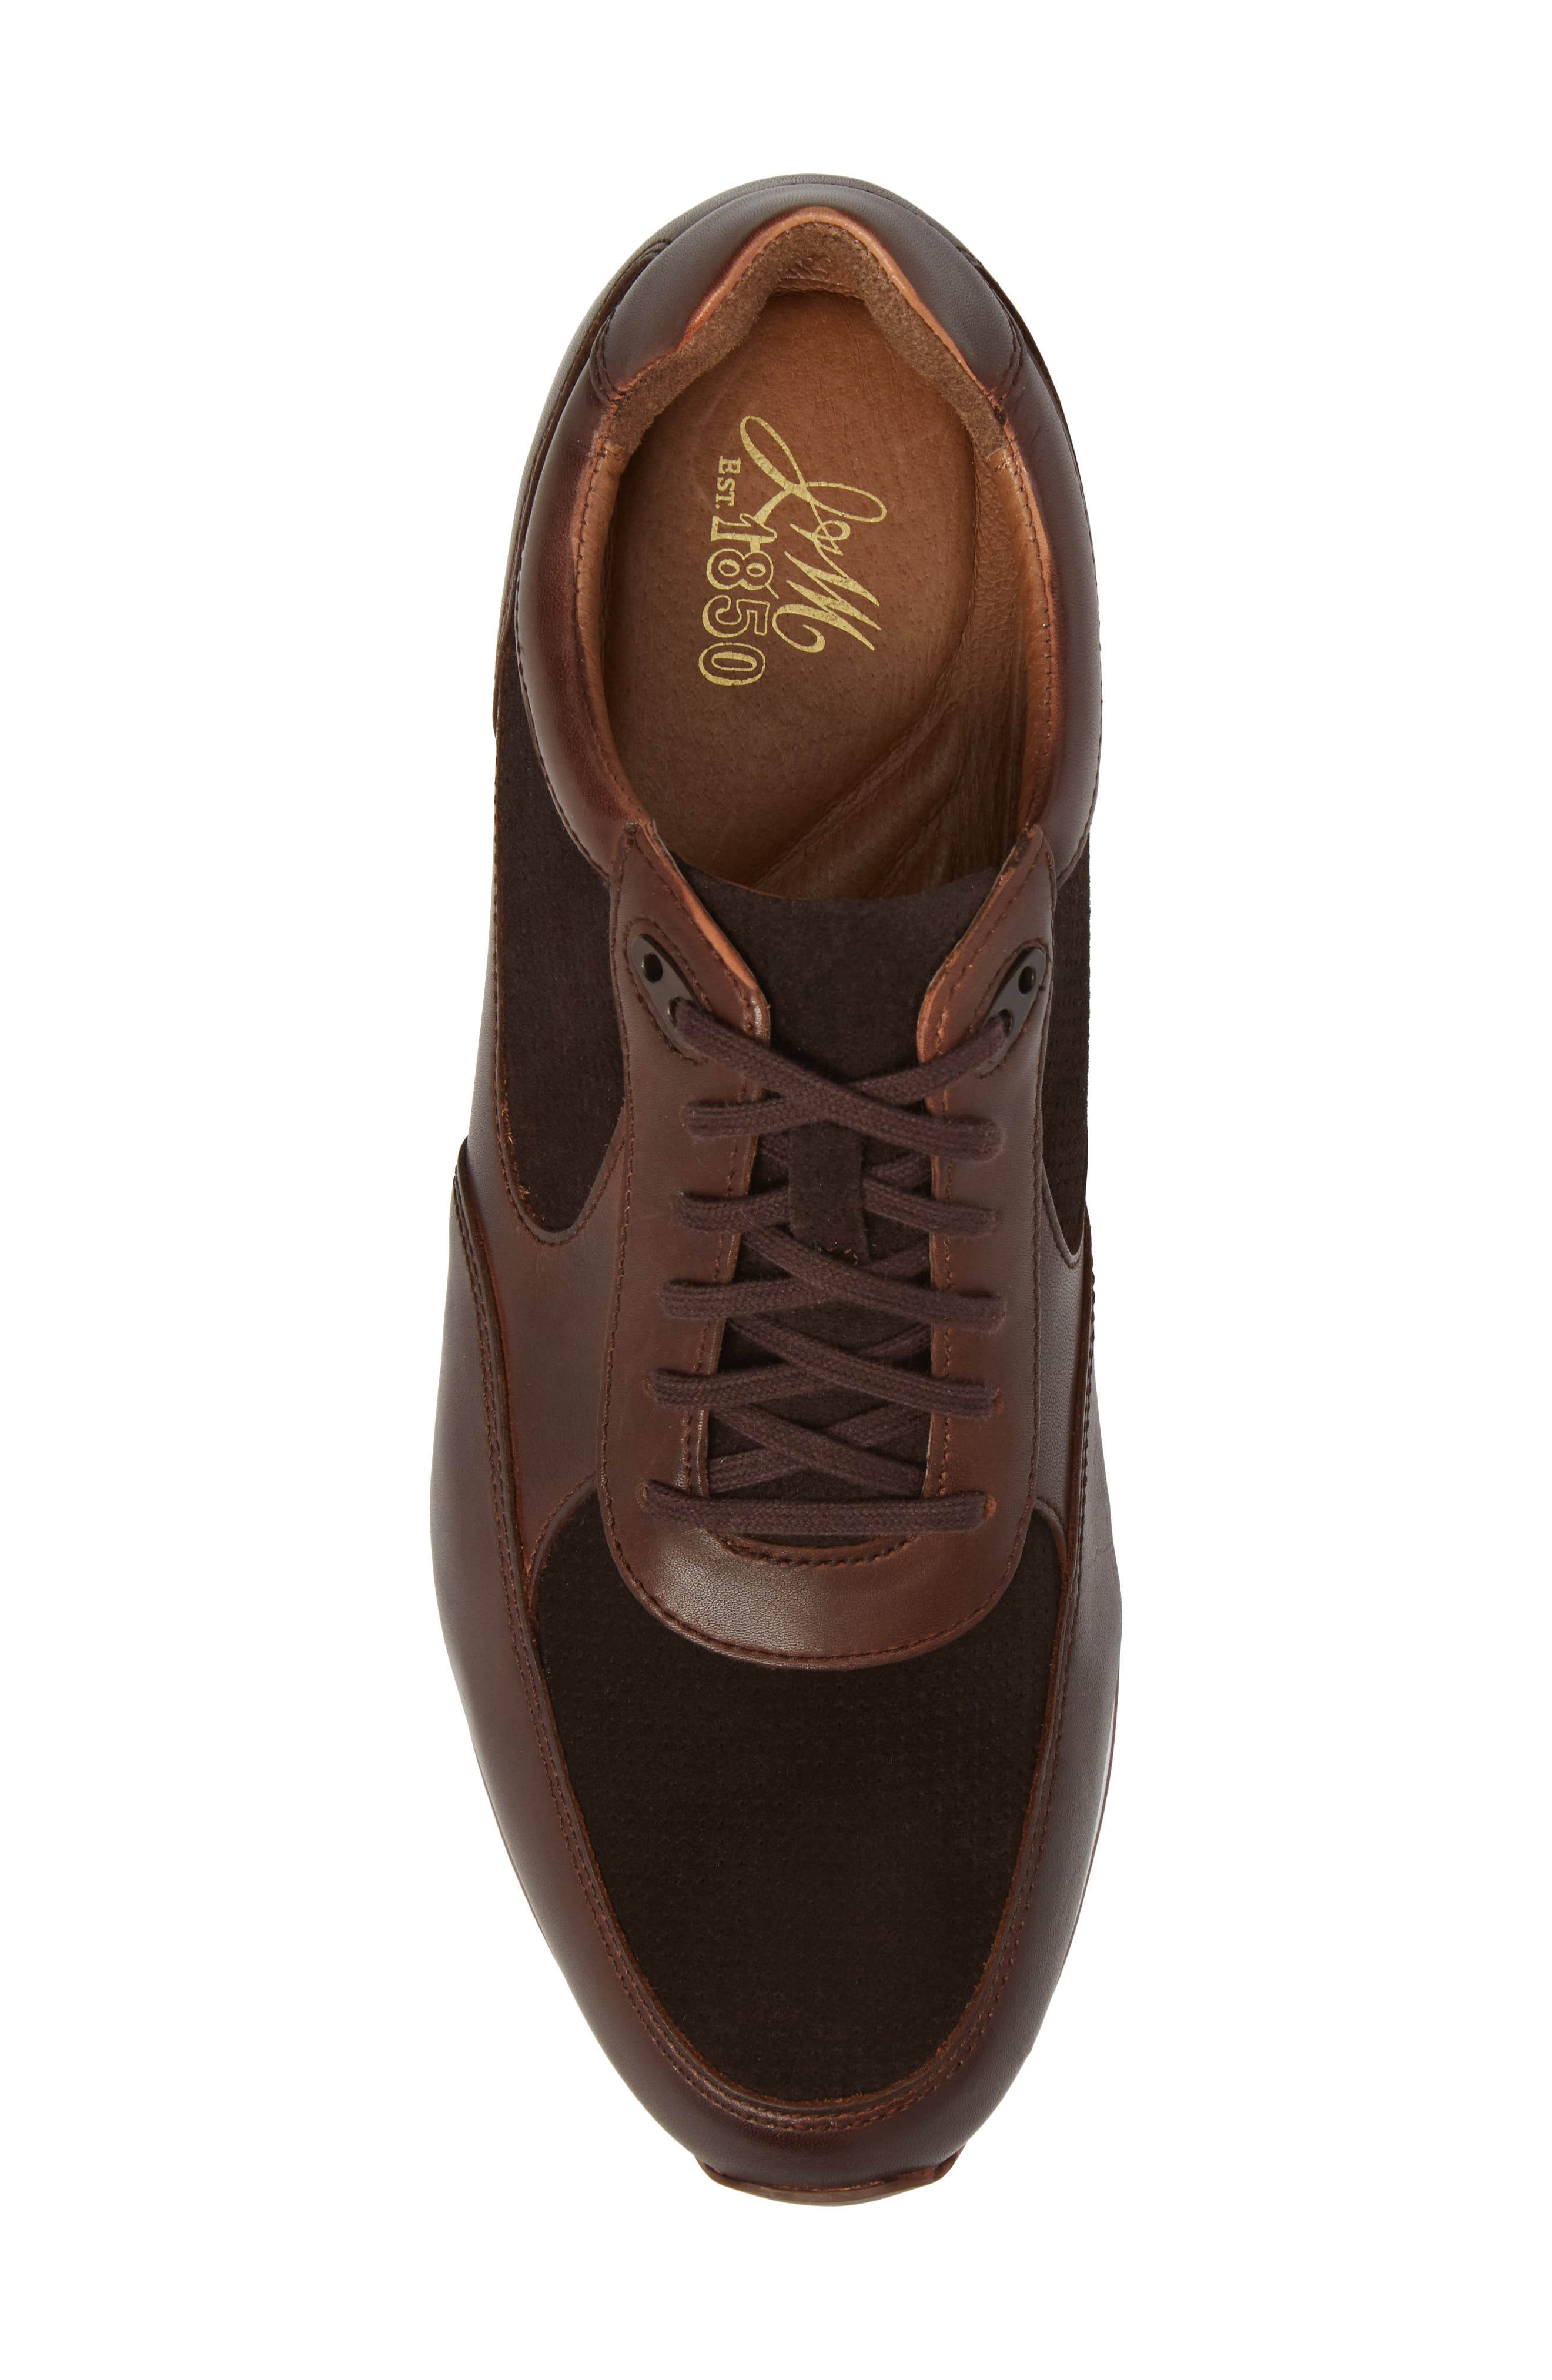 Malek Low Top Sneaker,                             Alternate thumbnail 5, color,                             Mahogany Leather/ Suede